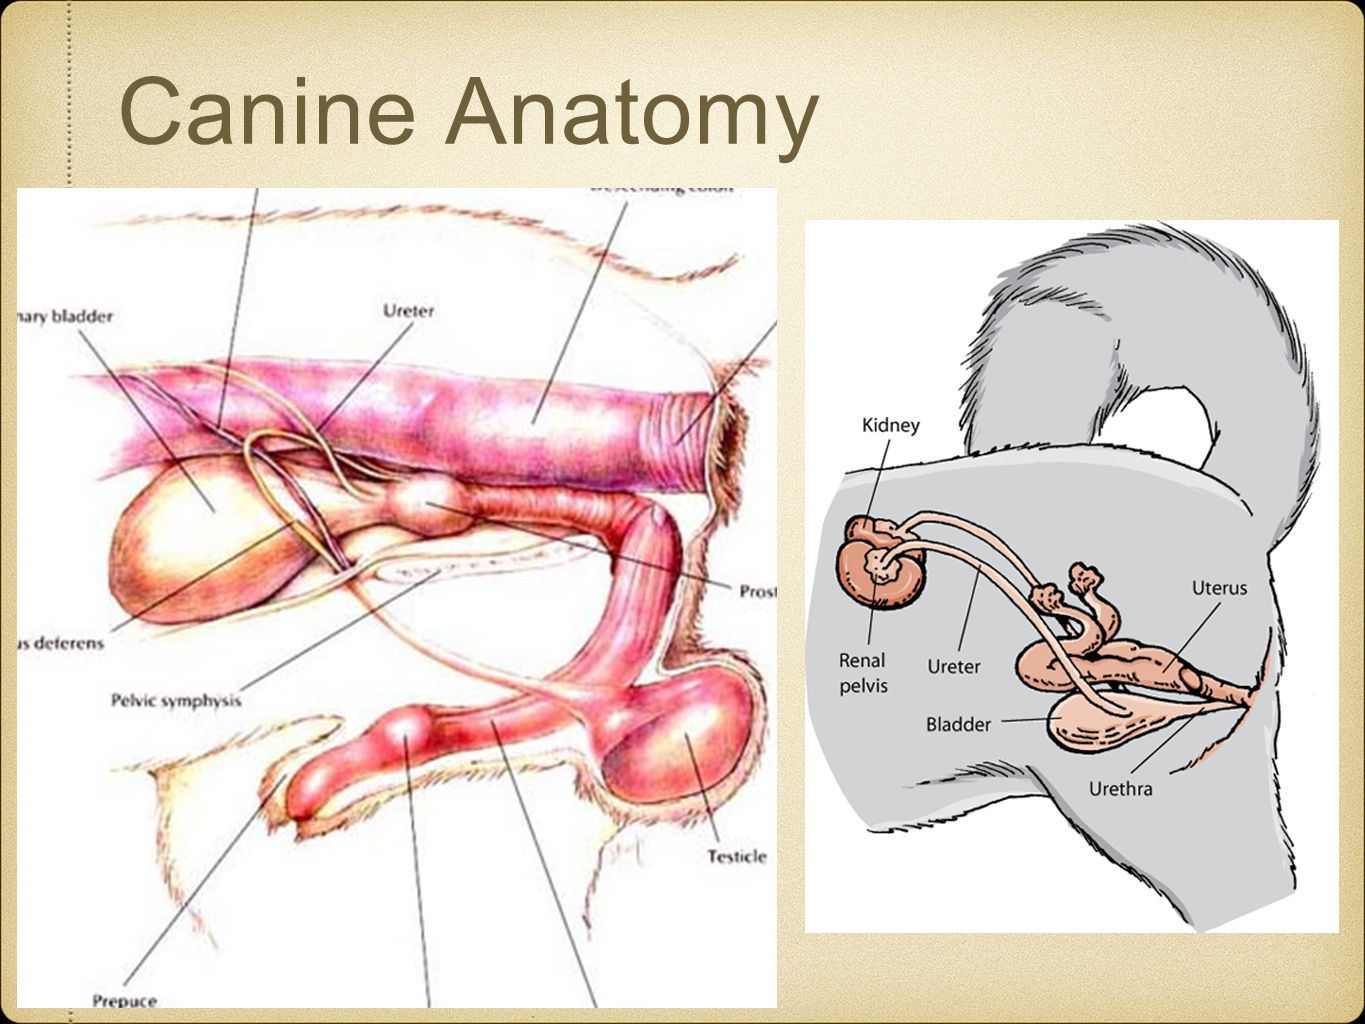 Dog Anatomy Kidney Location Pictures to pin on Pinterest